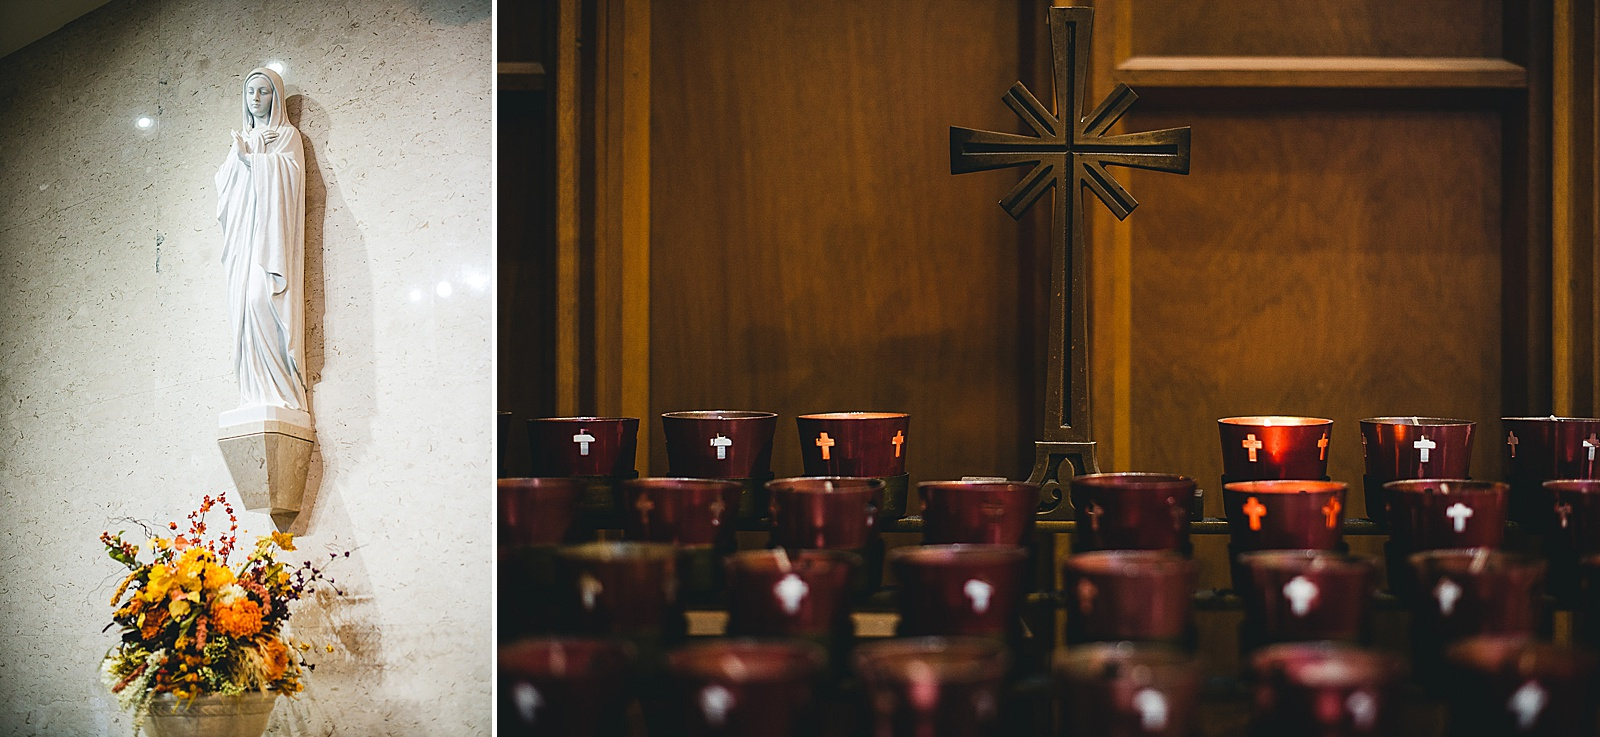 20 church details - The Glen Club Wedding Photos // Katie + Nick